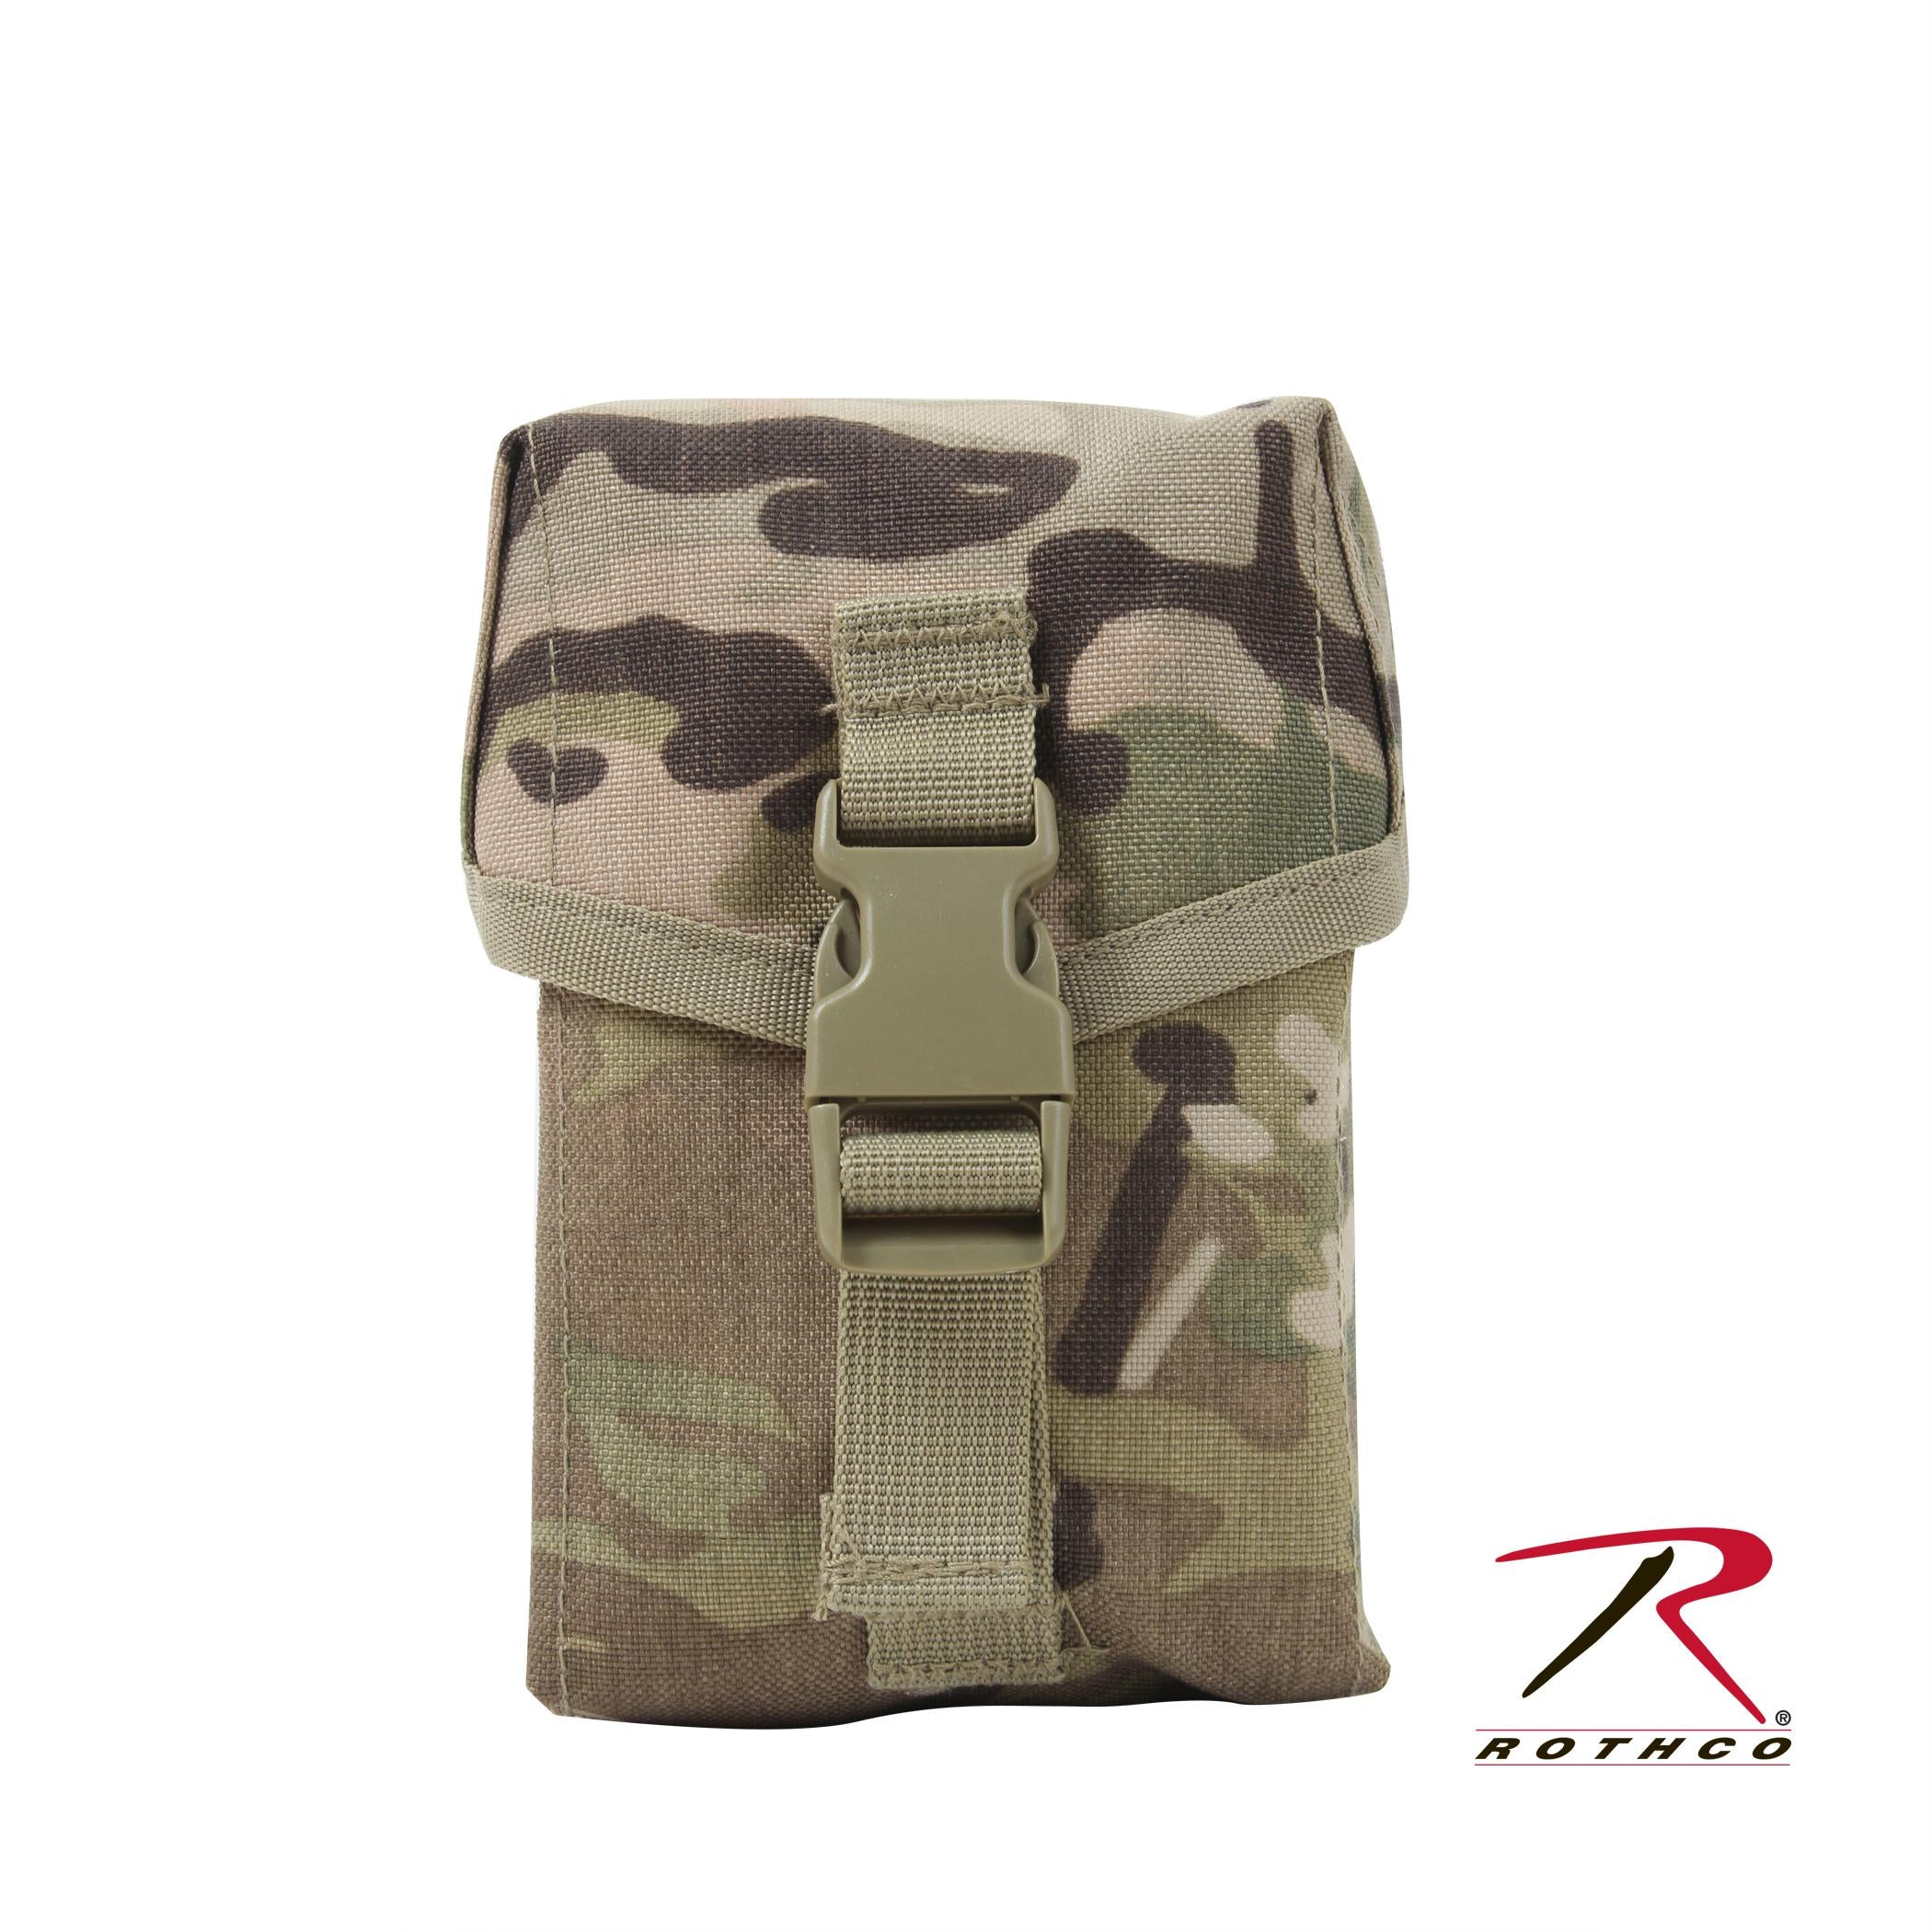 Rothco MOLLE II100 Round Saw Pouch - MultiCam